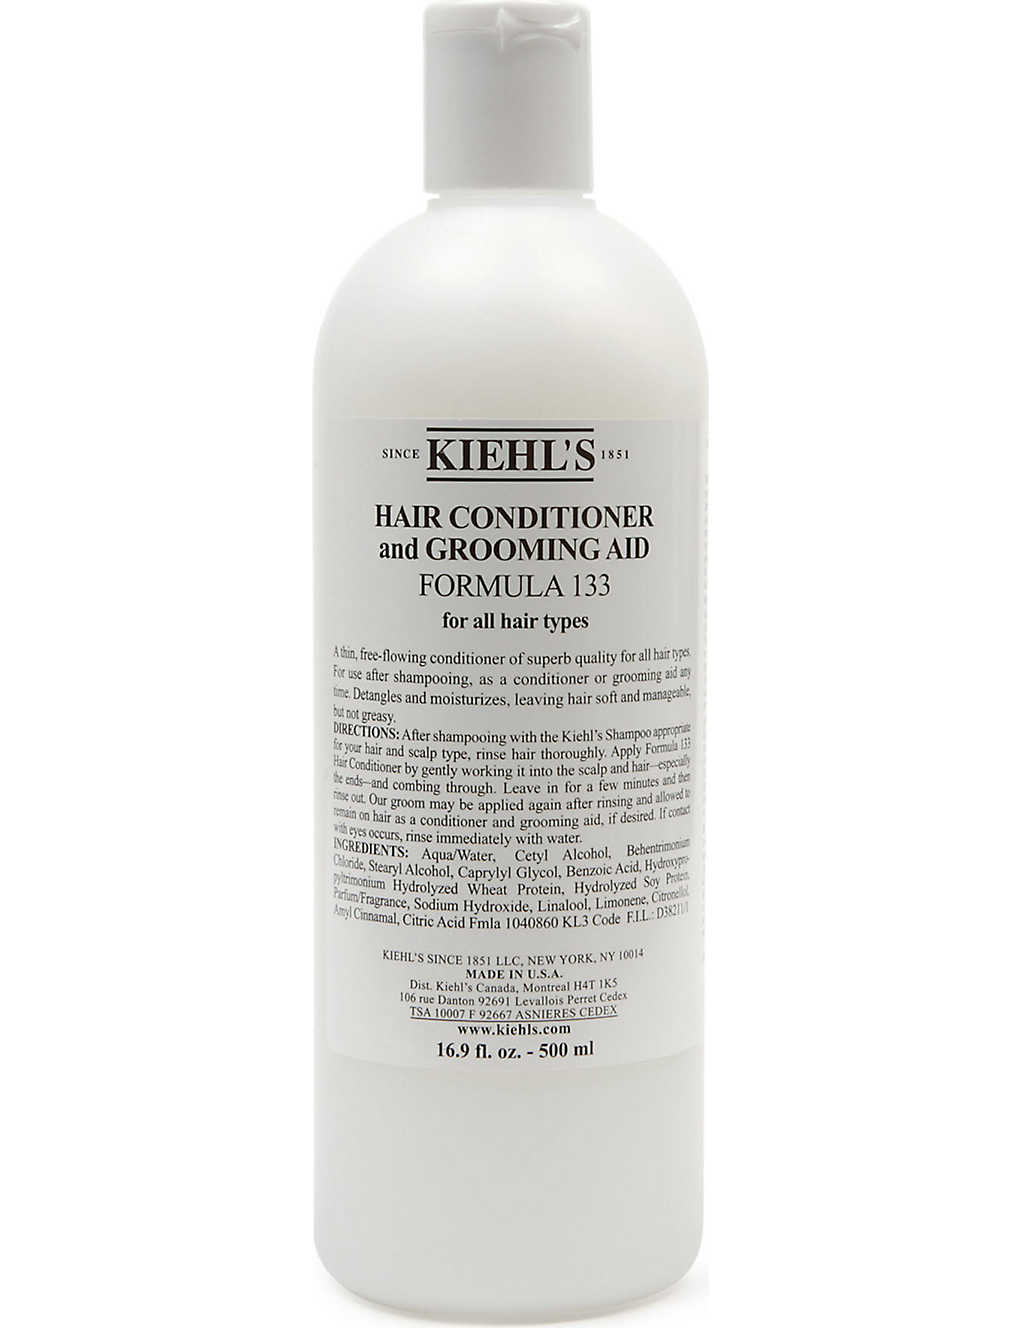 Kiehls Hair Conditioner Grooming Aid Formula 133 500ml Amino Acid No Recent Searches